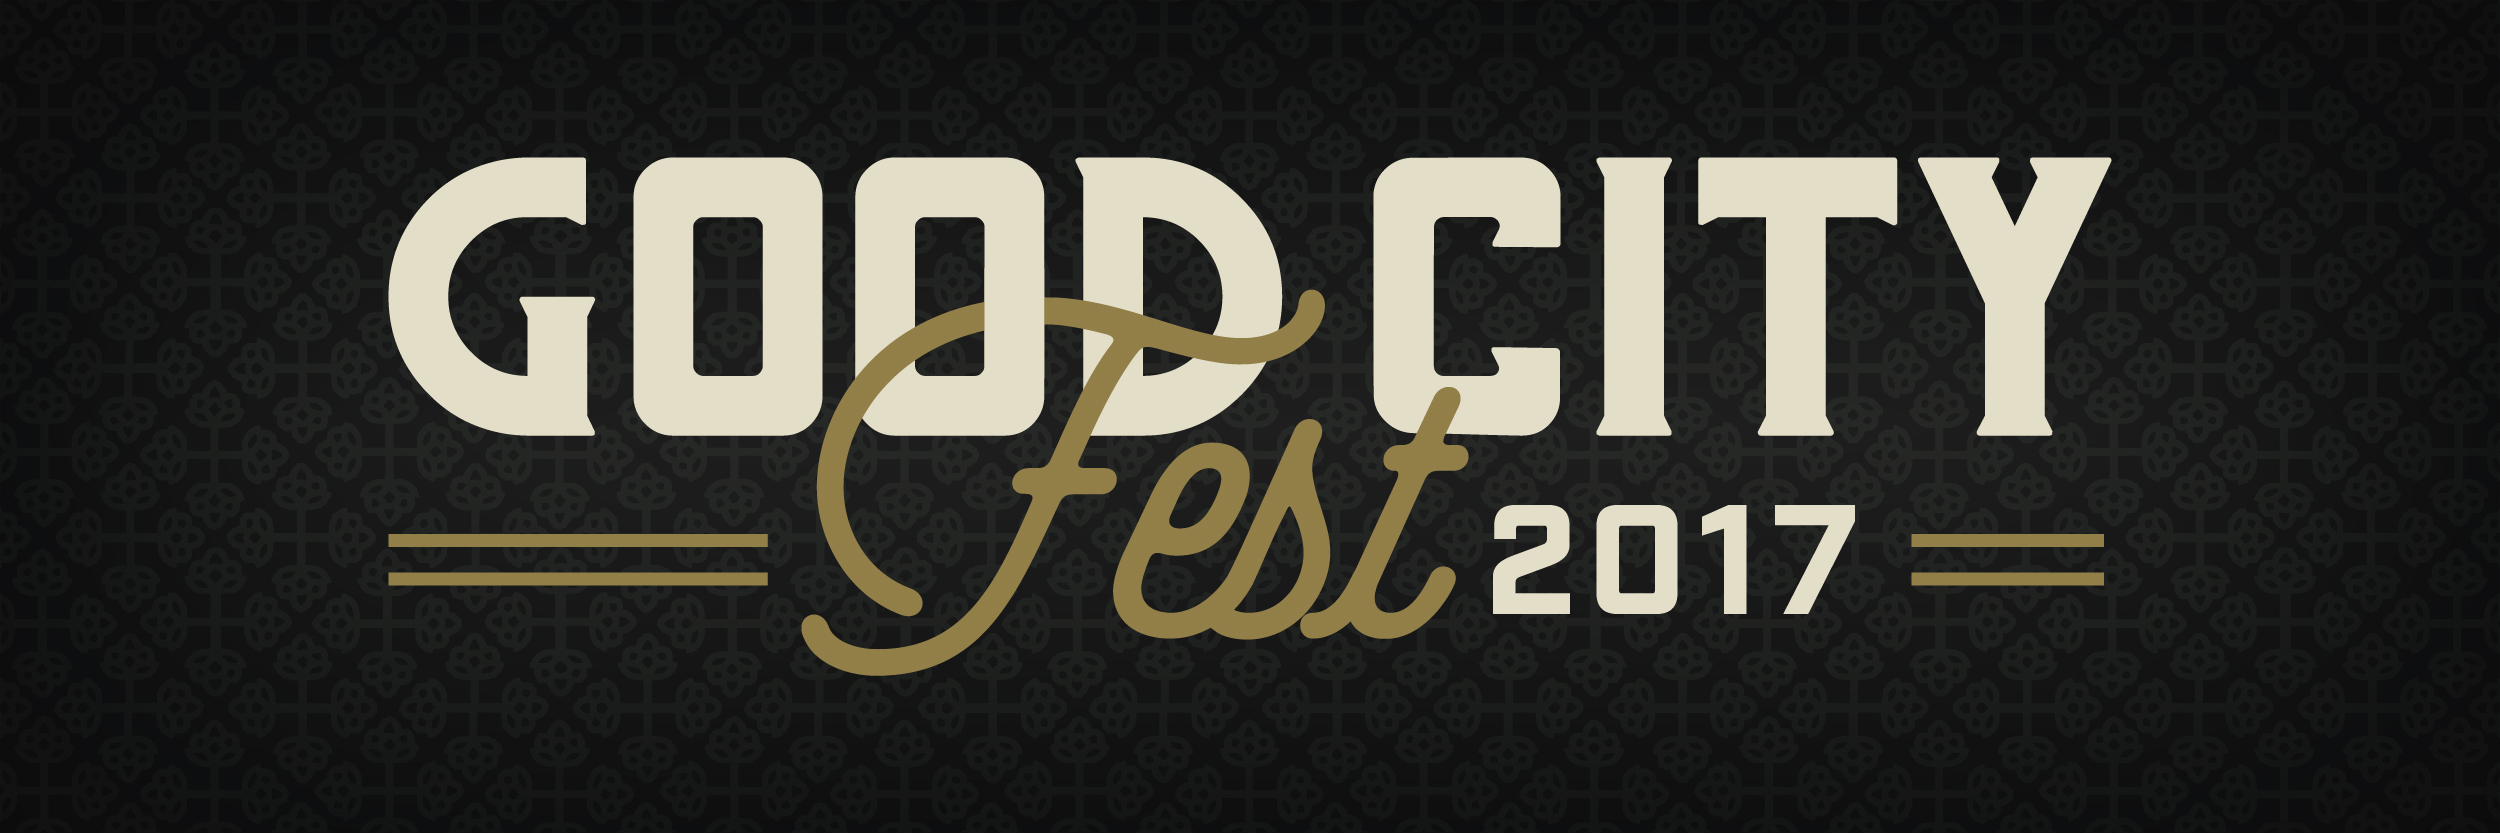 Good City Brewing Company Announces Good City Fest 2017